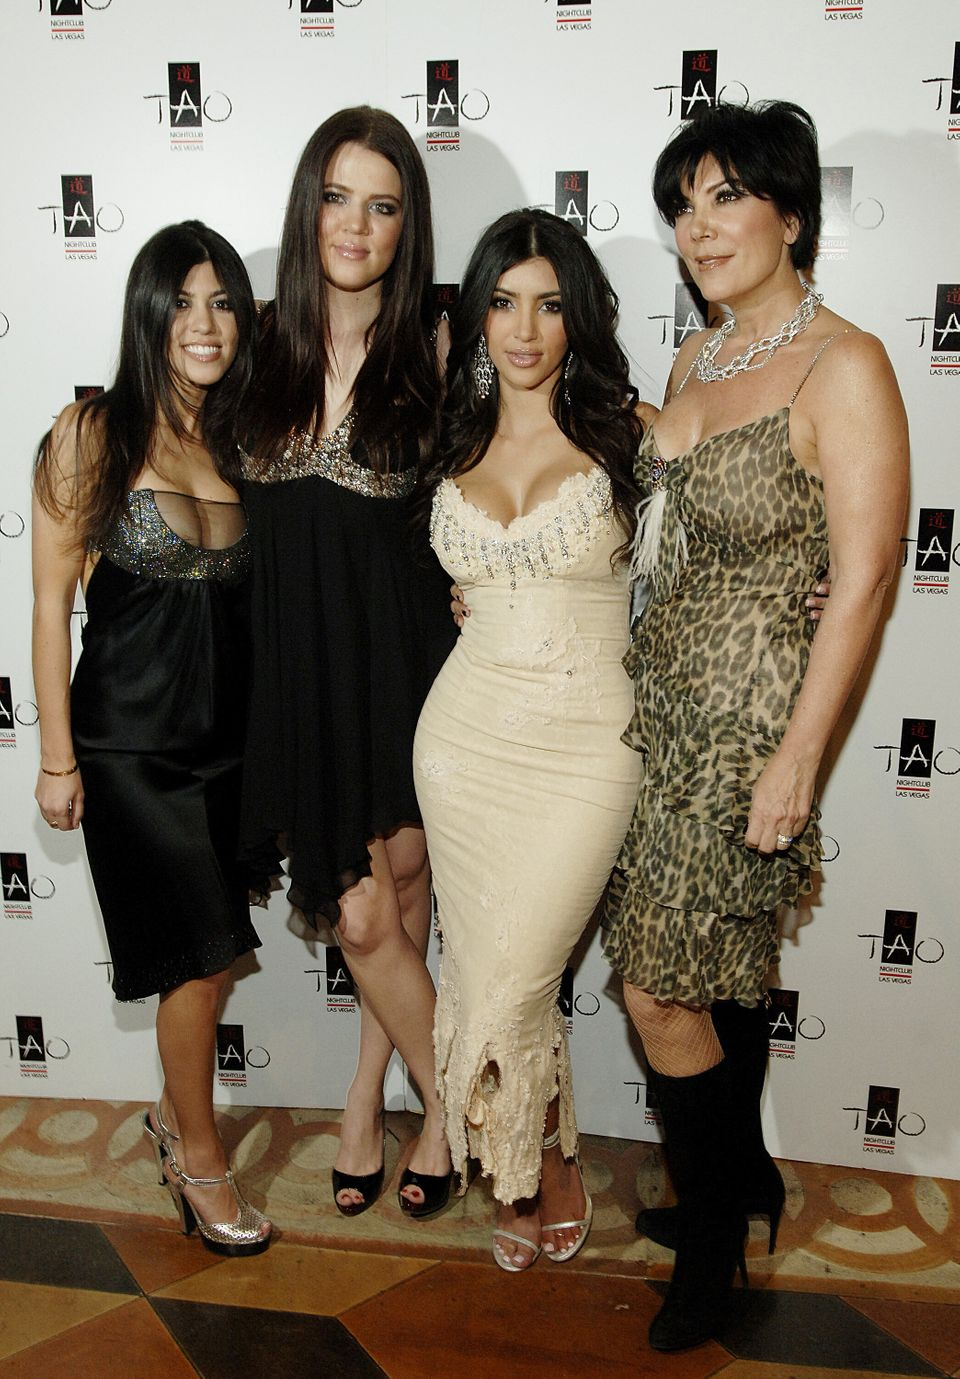 Remembering The Fashion From Season 1 Of 'Keeping Up With The Kardashians' 8